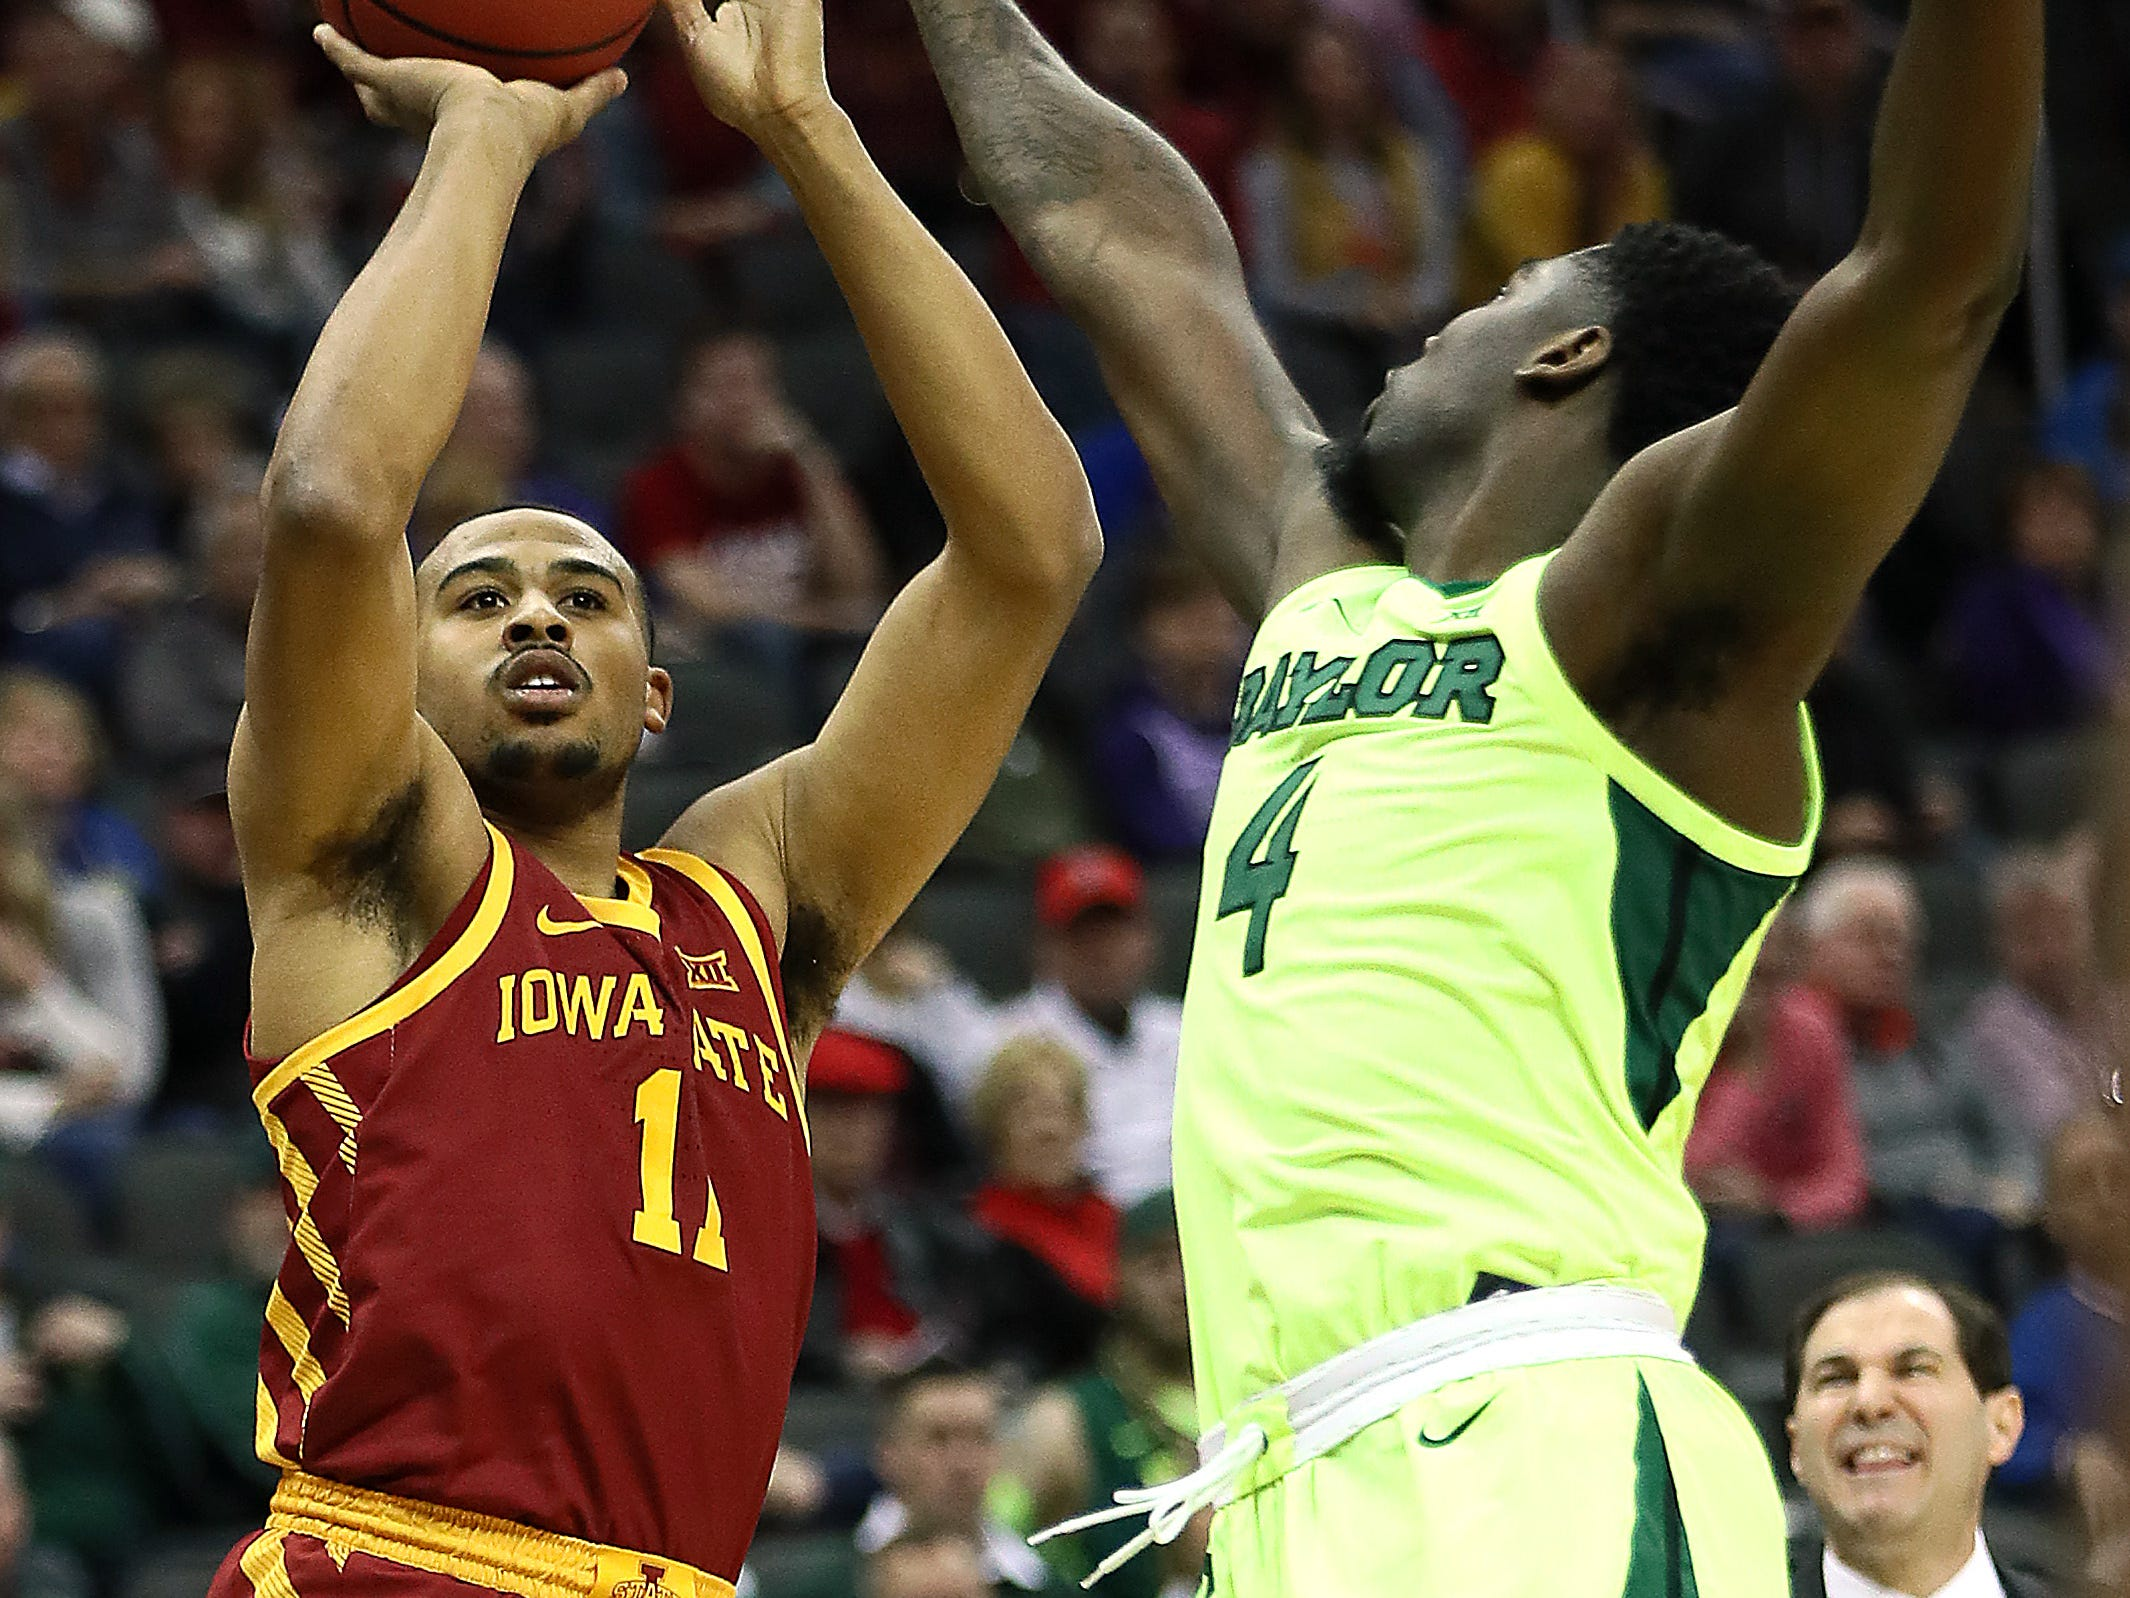 KANSAS CITY, MISSOURI - MARCH 14:  Talen Horton-Tucker #11 of the Iowa State Cyclones shoots over Mario Kegler #4 of the Baylor Bears during the quarterfinal game of the Big 12 Basketball Tournament at Sprint Center on March 14, 2019 in Kansas City, Missouri. (Photo by Jamie Squire/Getty Images)